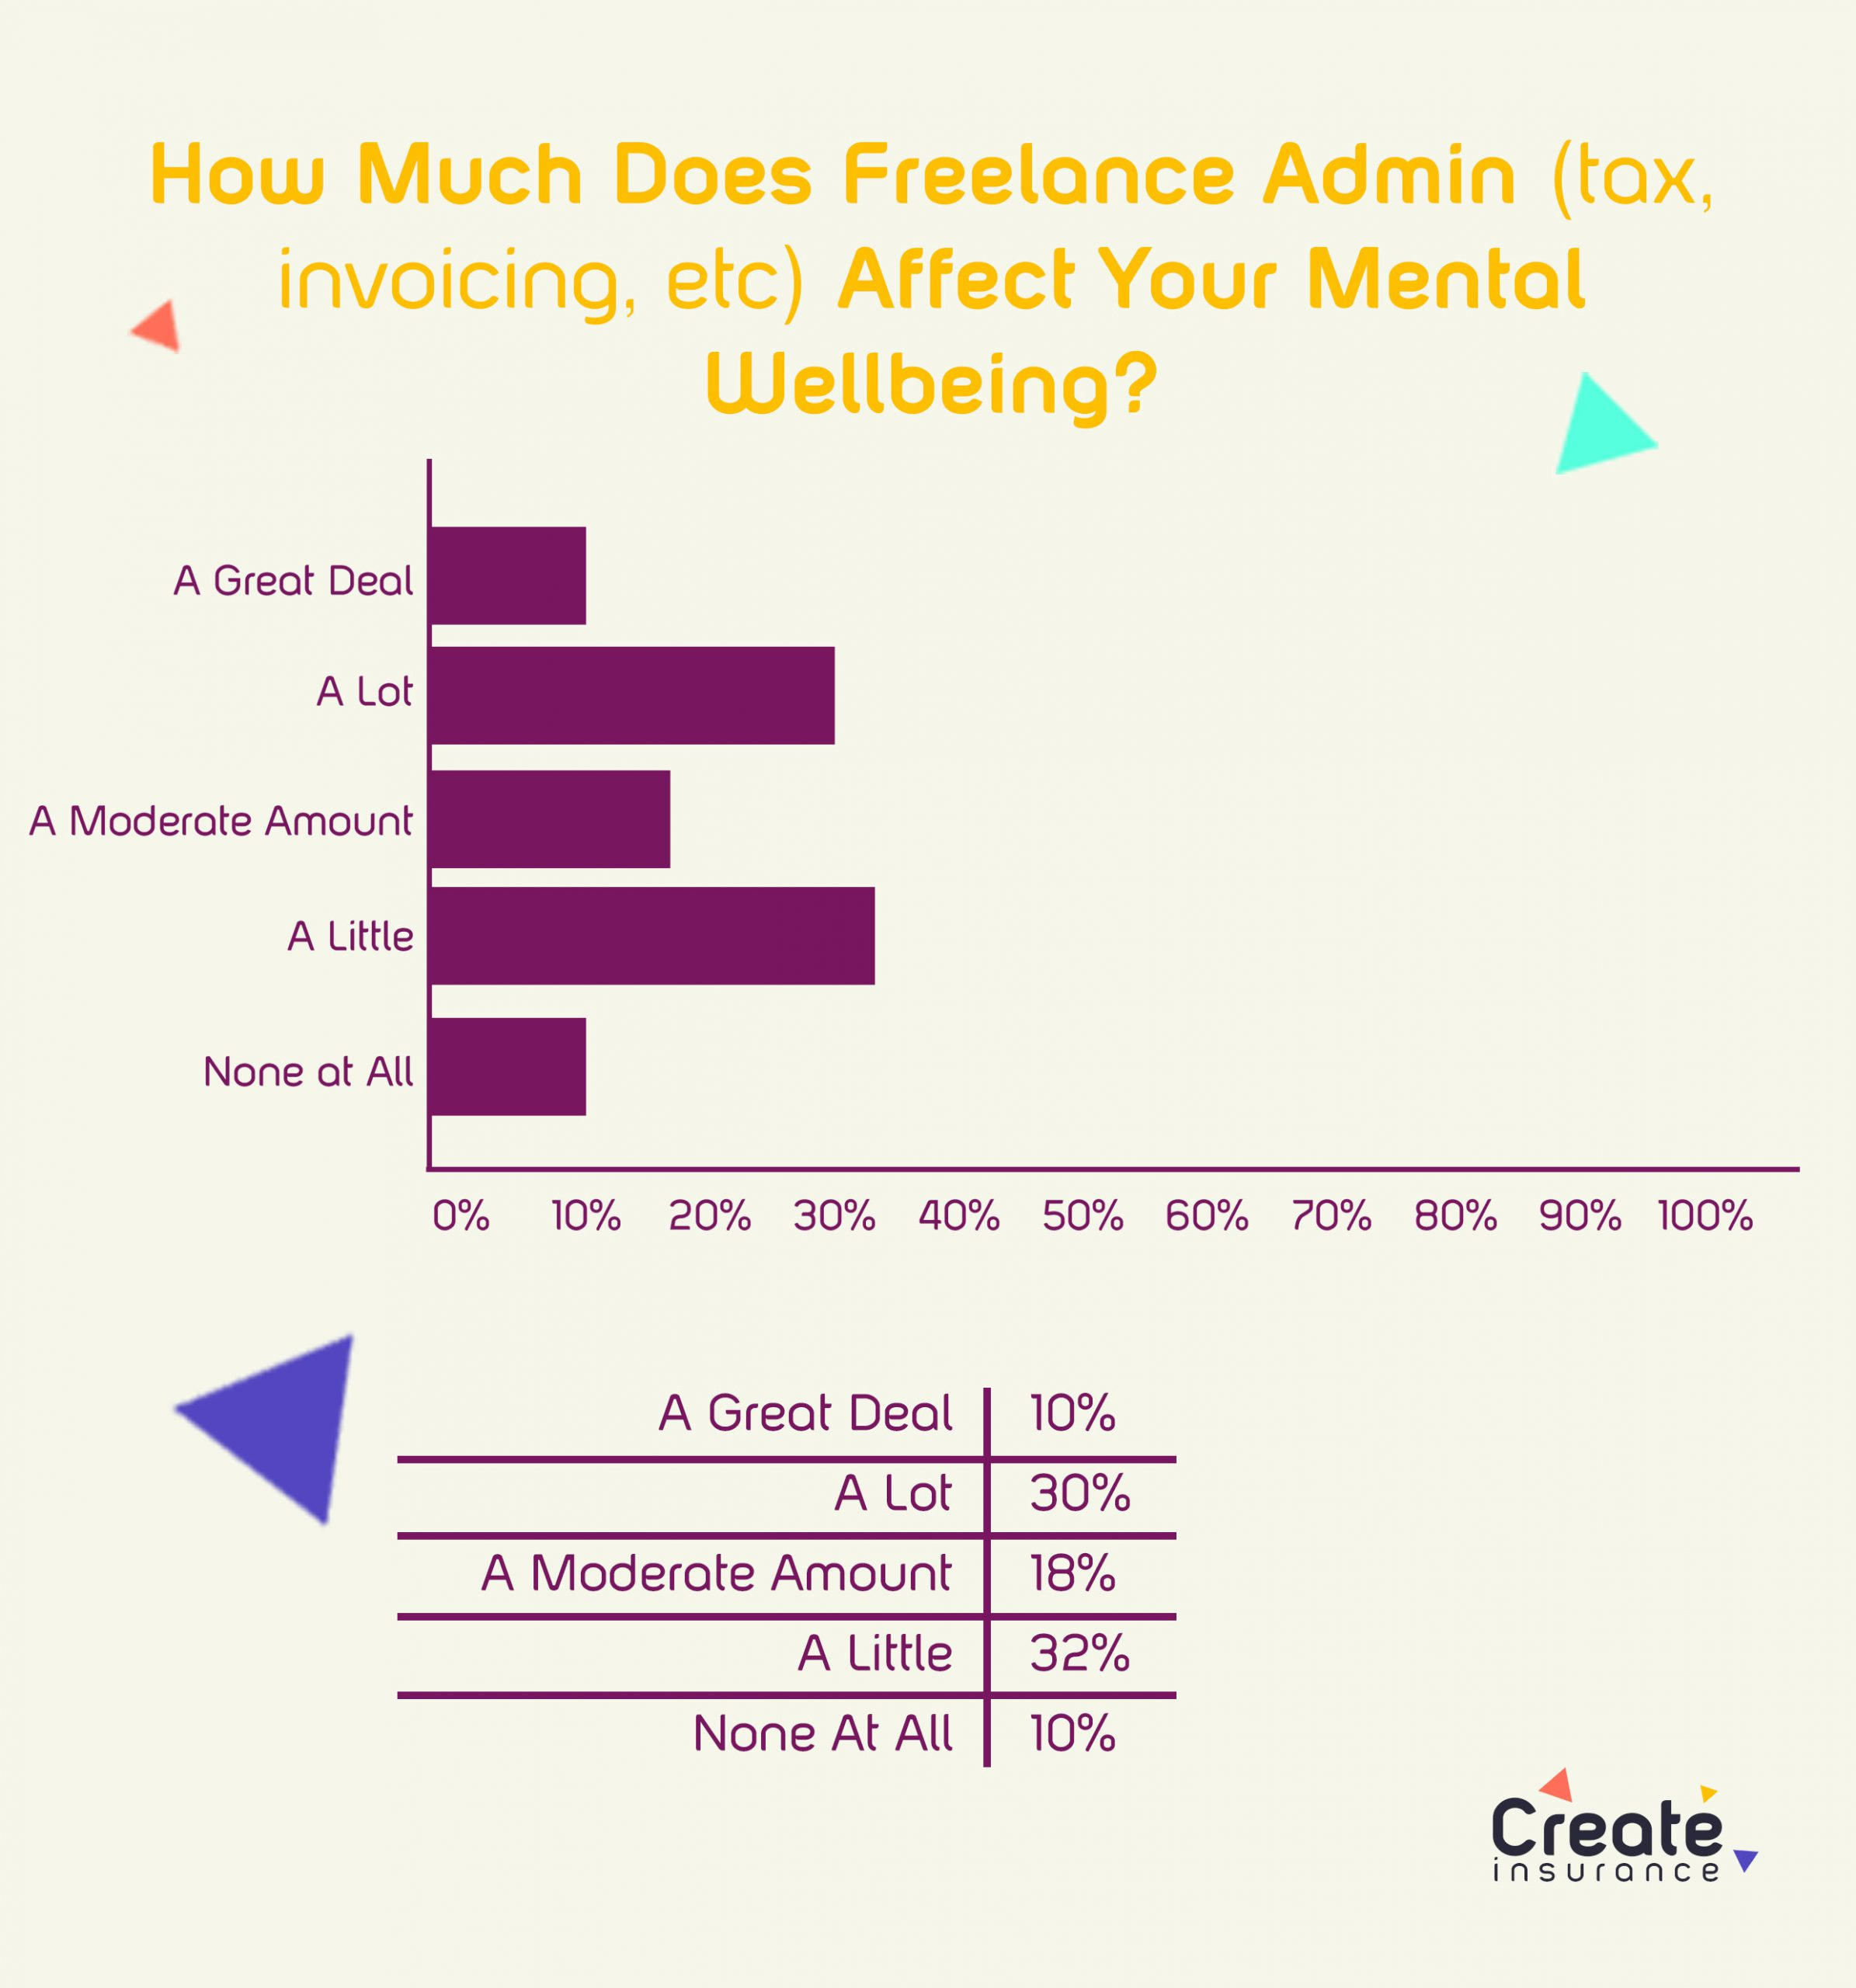 freelance admin affect wellbeing